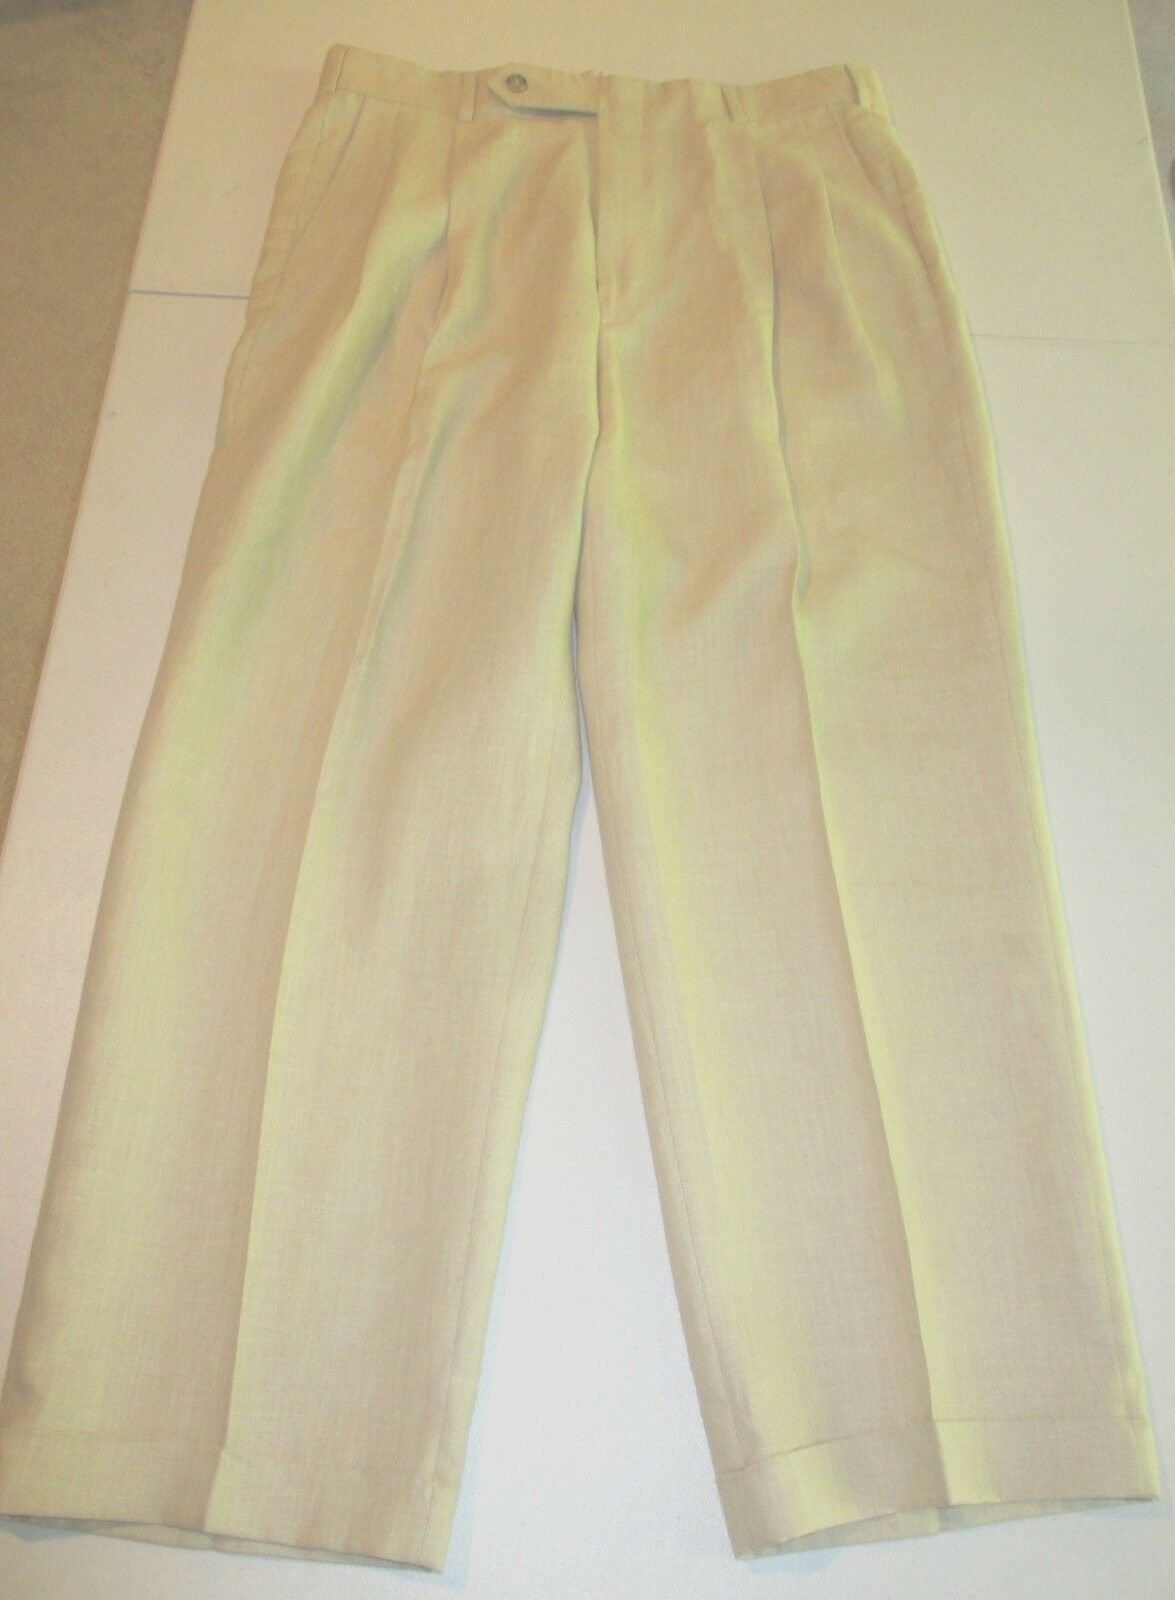 New With TagsBrooks Bredhers Beige Linen Pleated Front Trousers Size 34 28.5